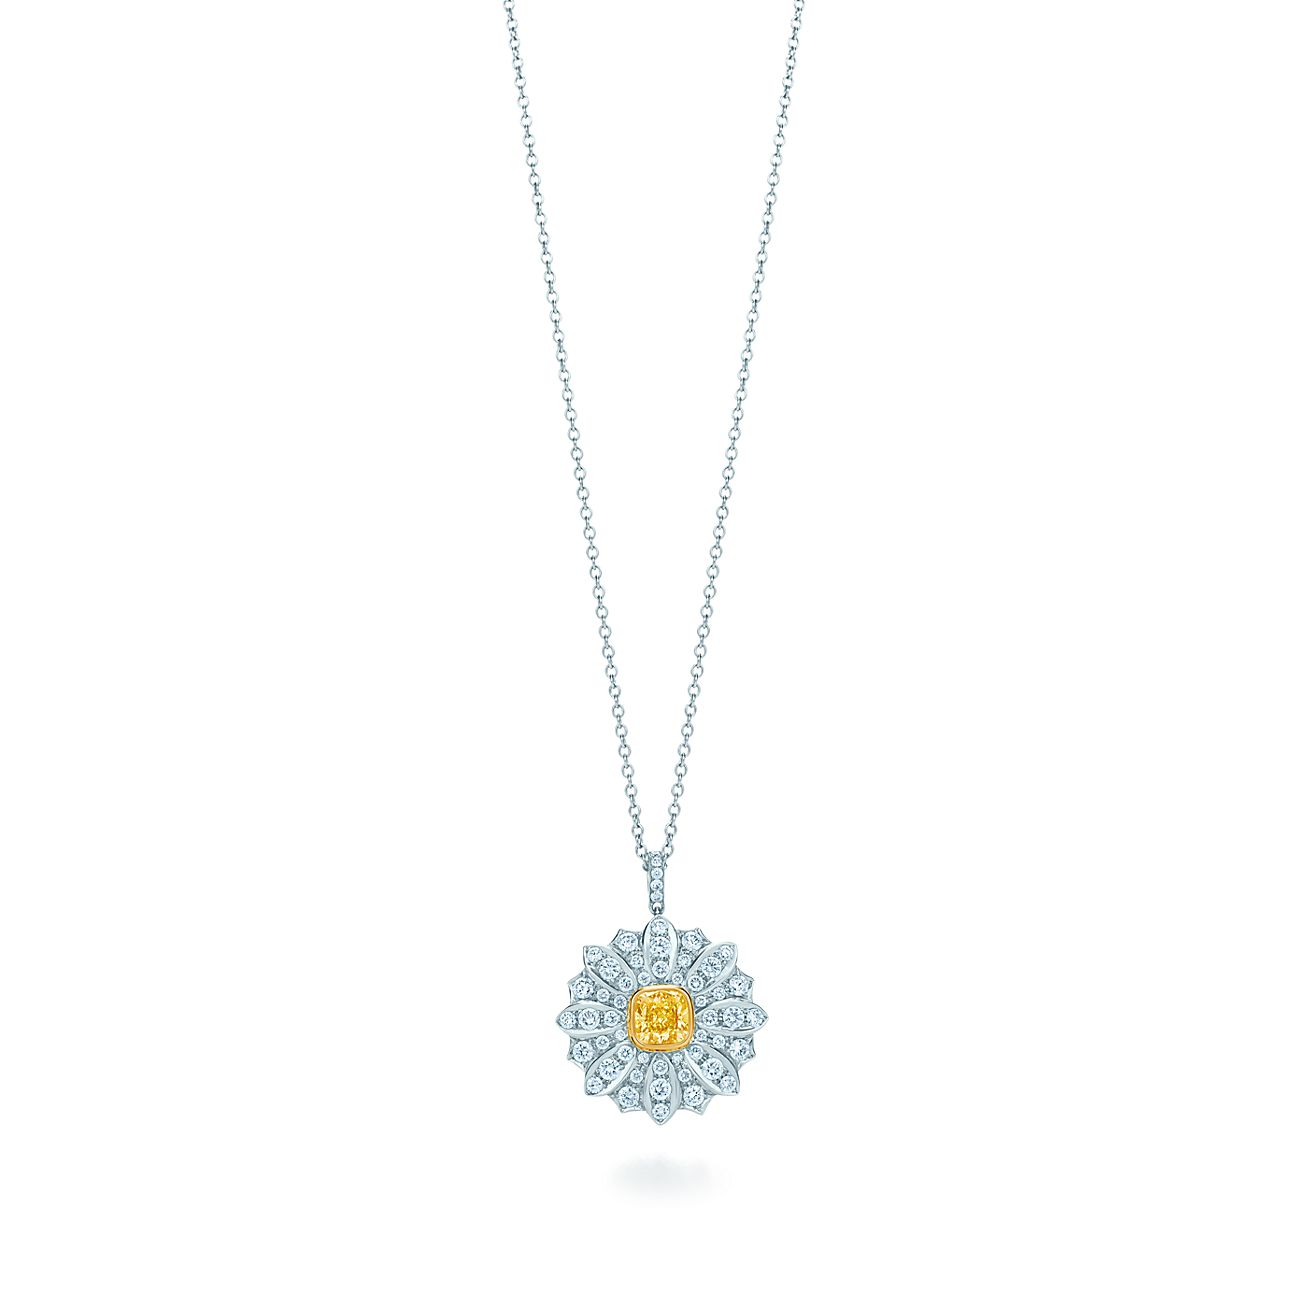 two gold silver sterling pendant toned pk bling jewelry necklace whimsical daisy flower